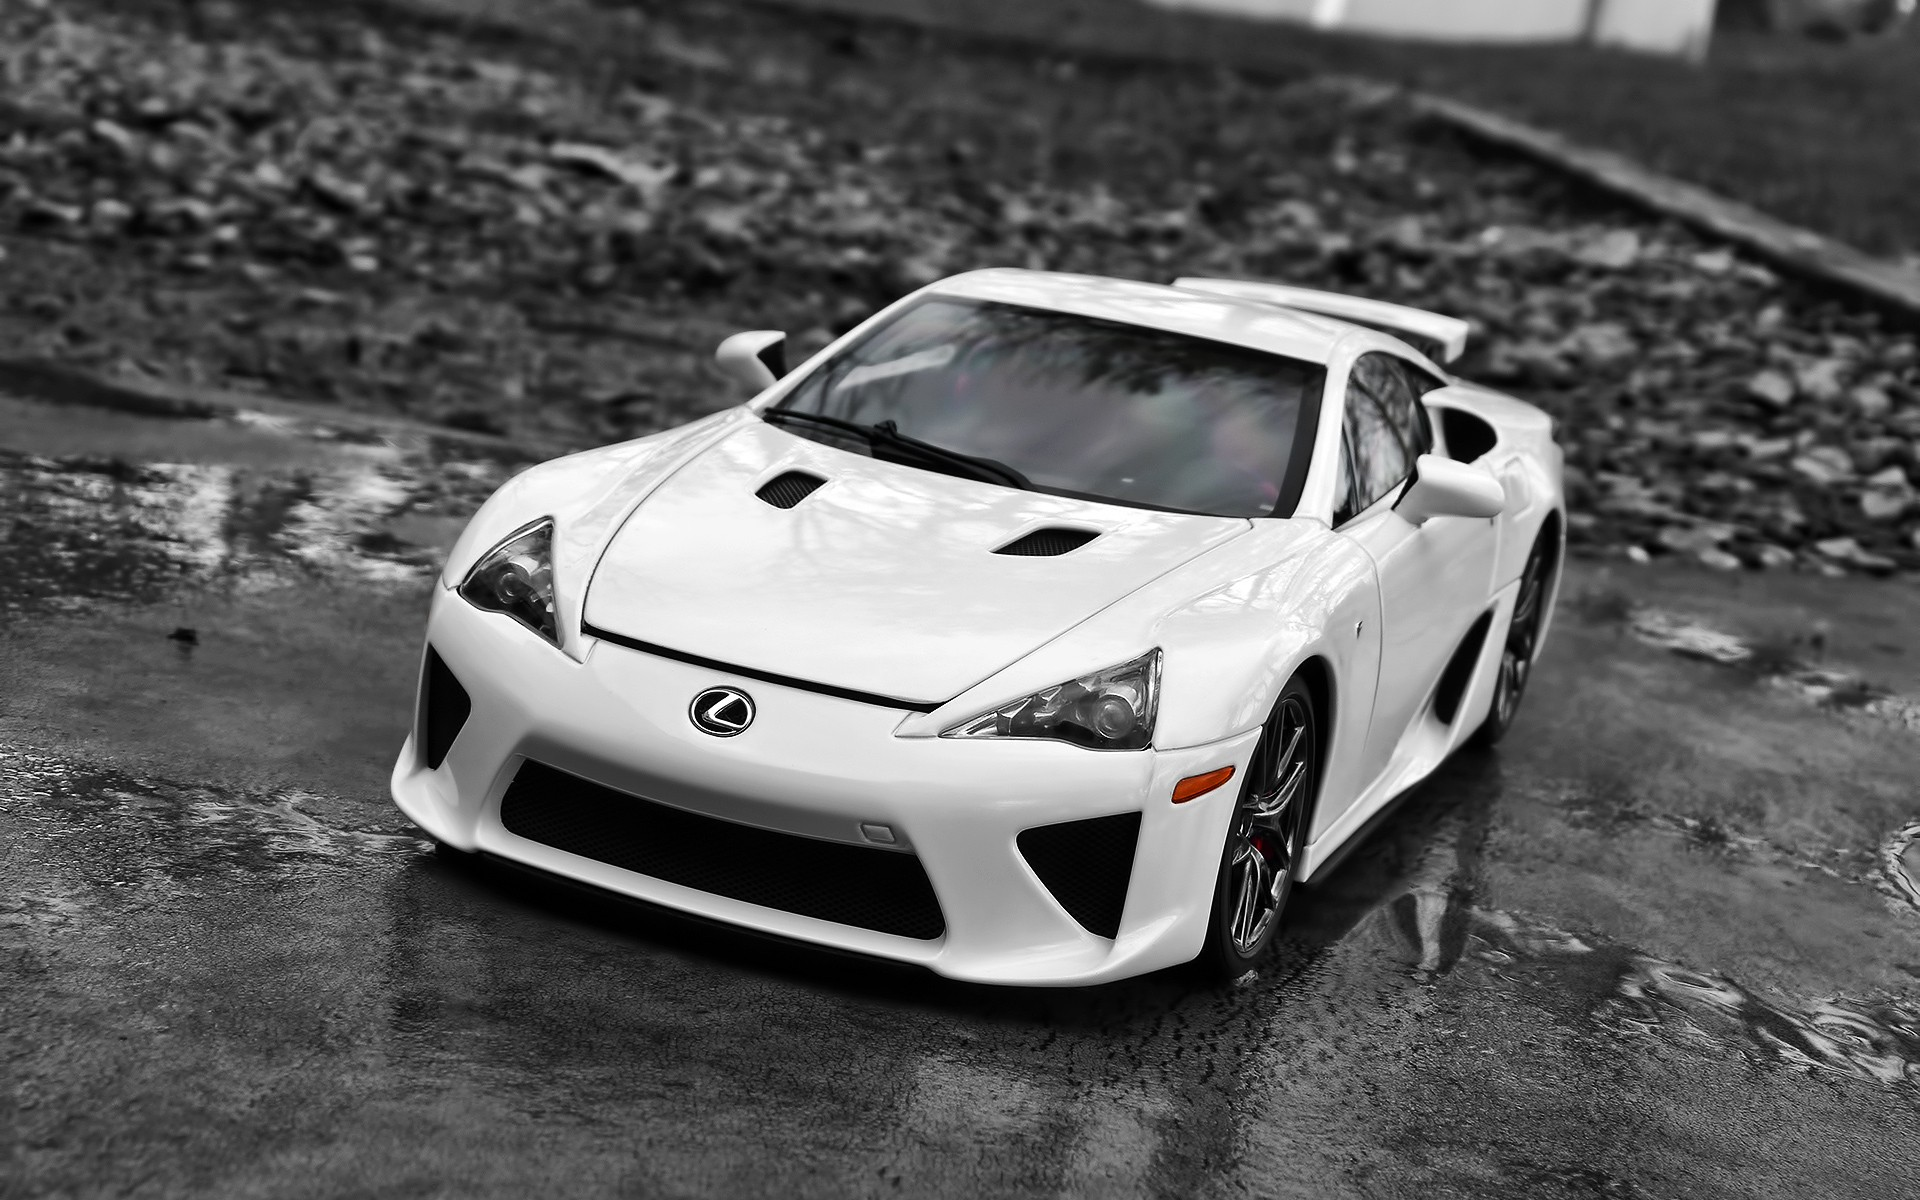 Powerful sports car Lexus LFA, photo wallpapers for your computer